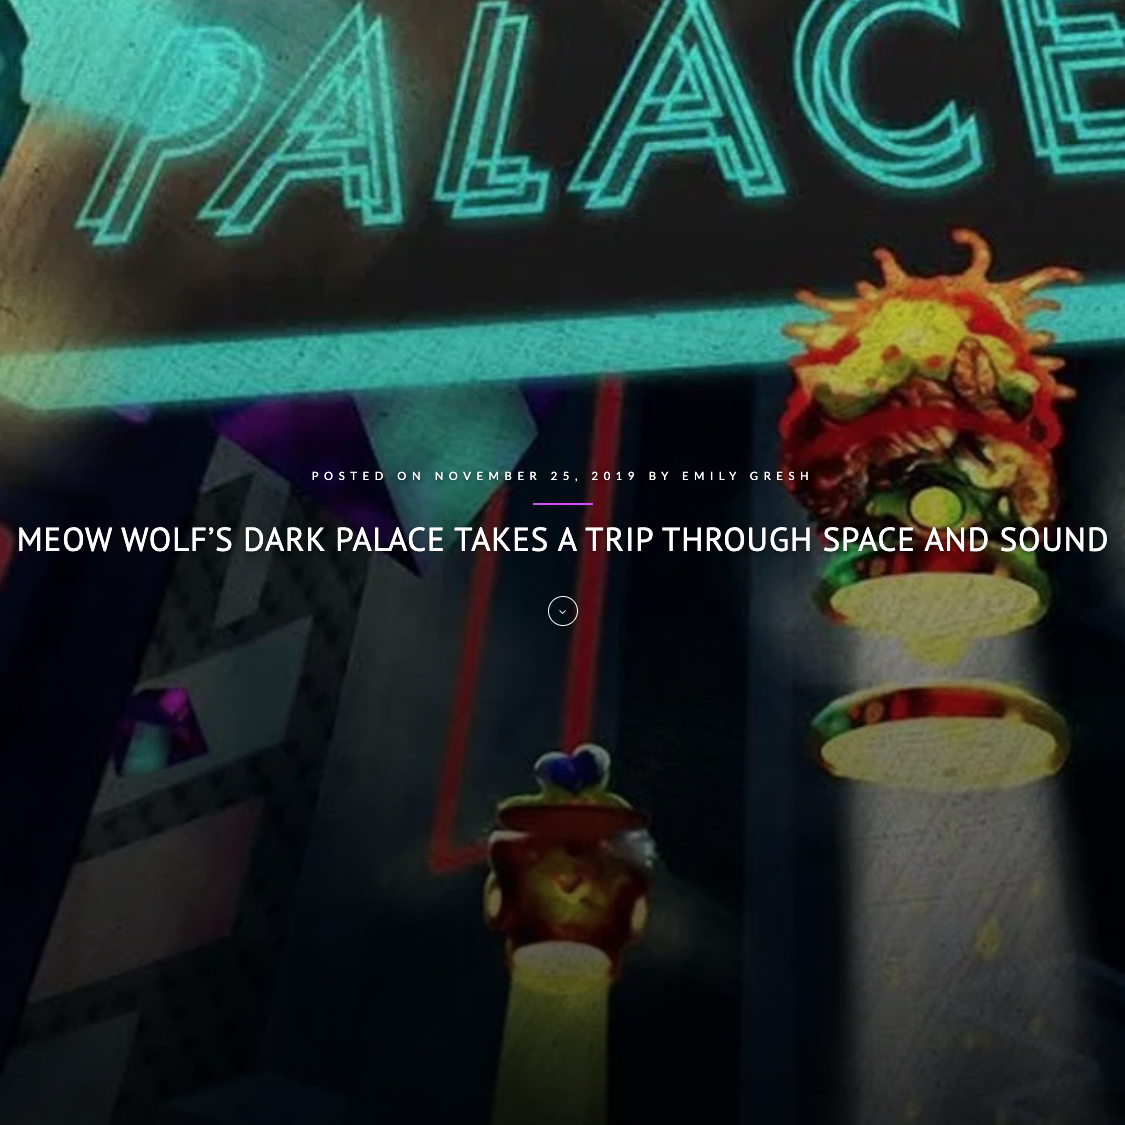 Meow Wolf's Dark Palace takes a trip through space and sound